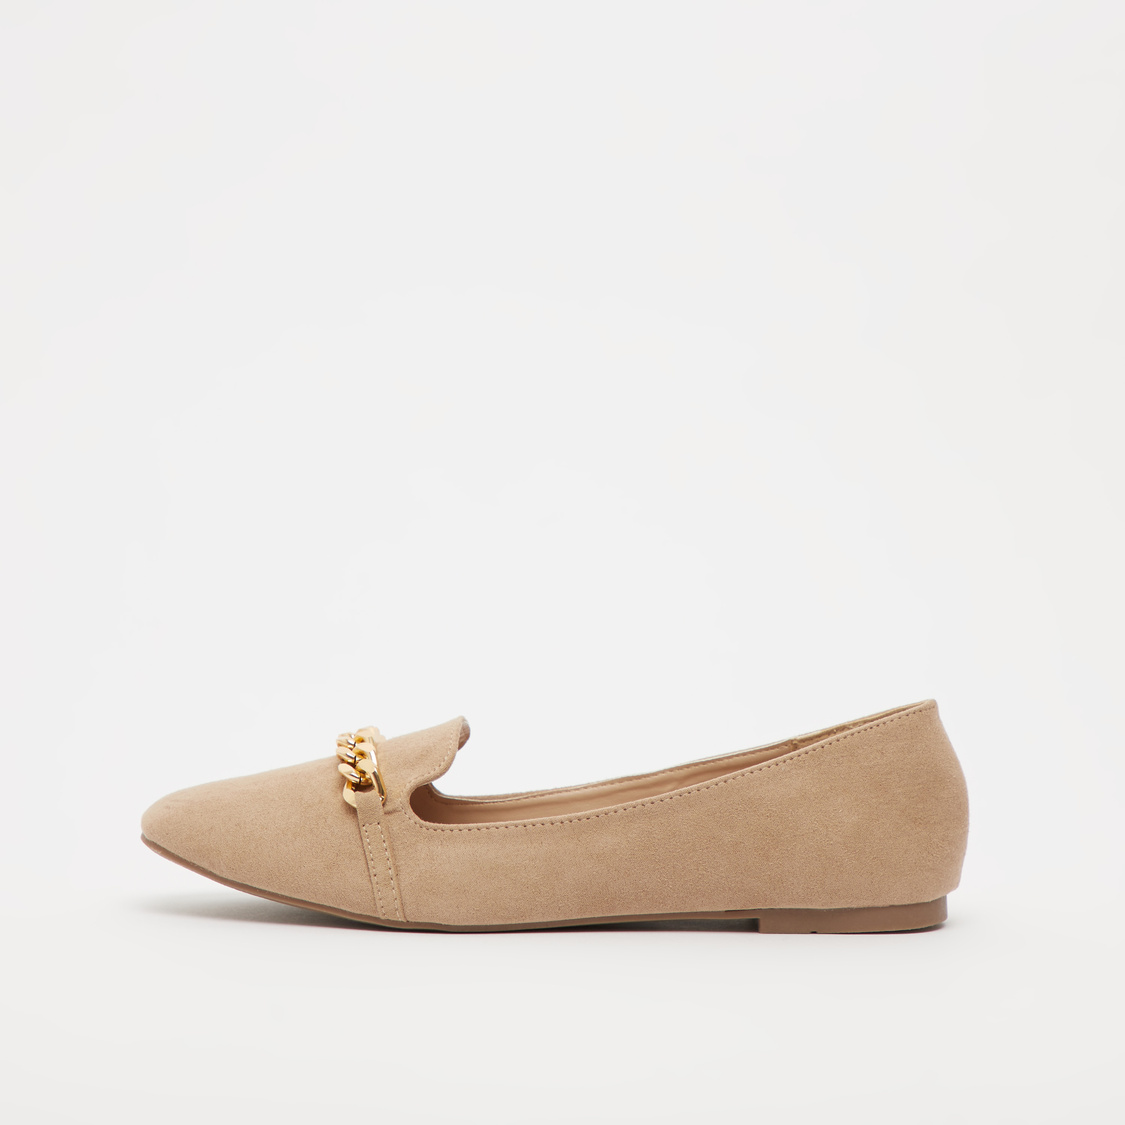 Solid Ballerinas with Applique Detail